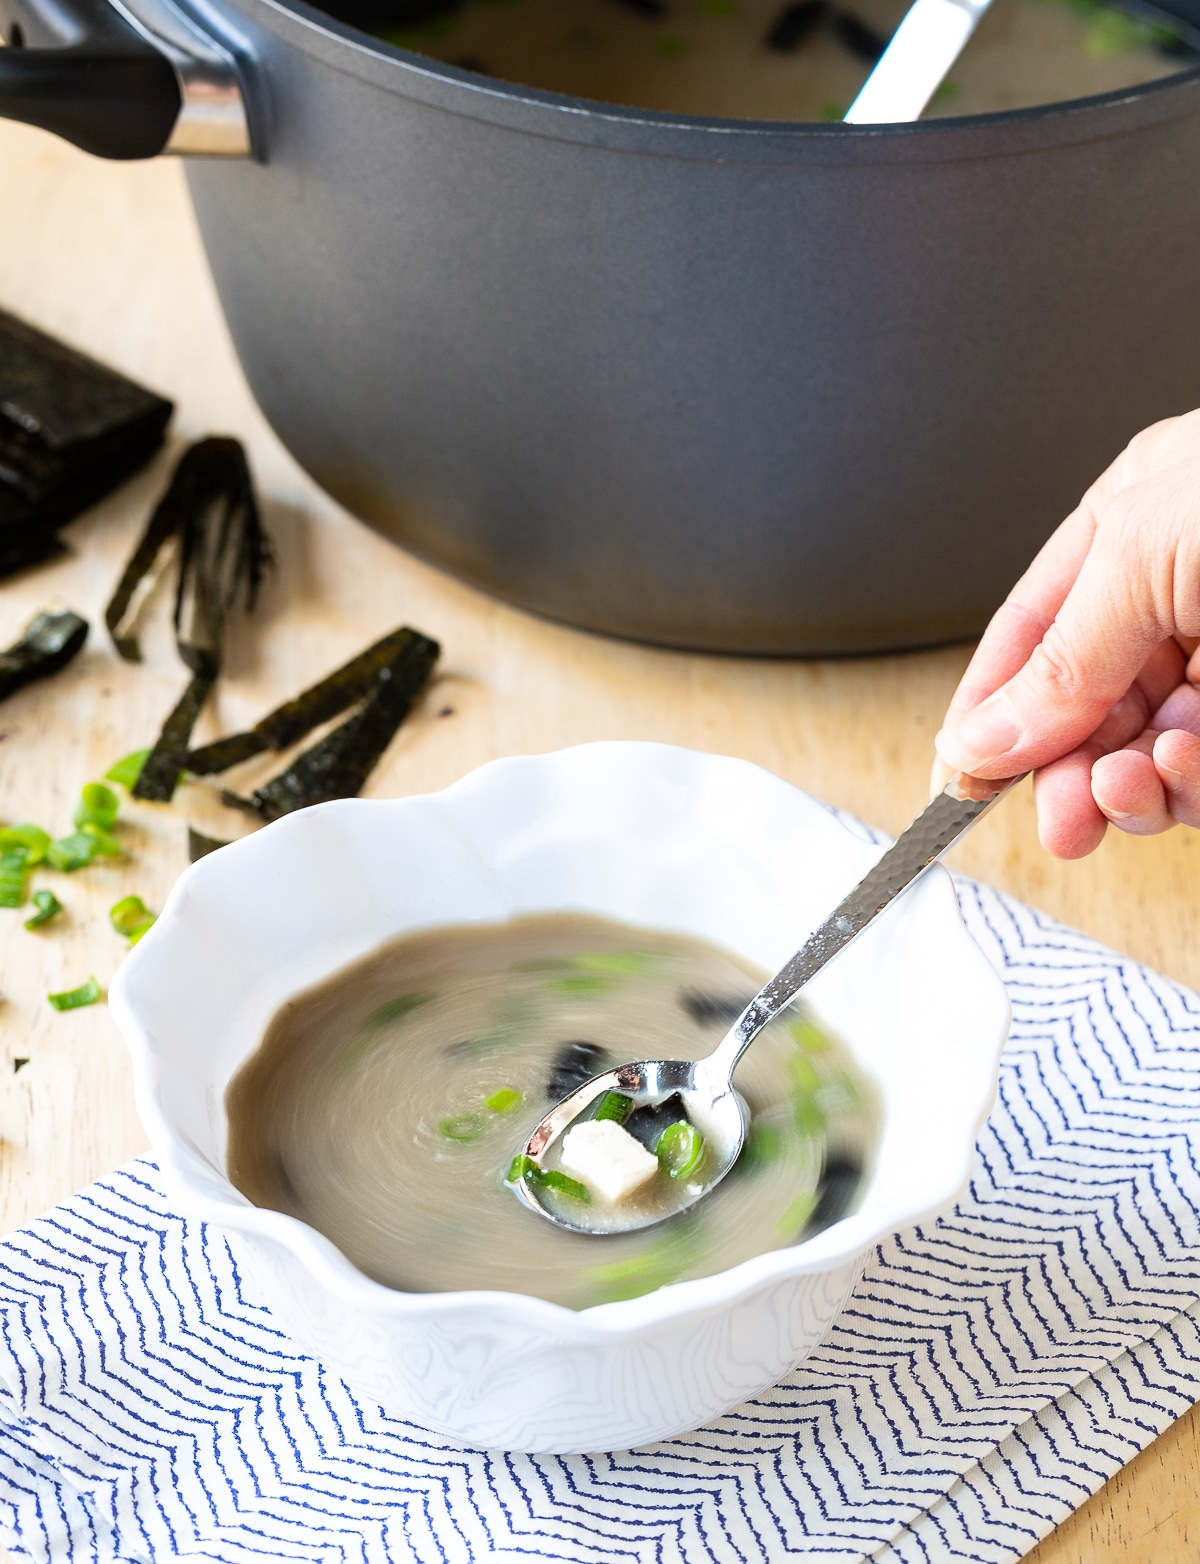 How To Make Miso Soup Recipe in 5 Minutes! #ASpicyPerspective #healthy #vegan #vegetarian #miso #soup